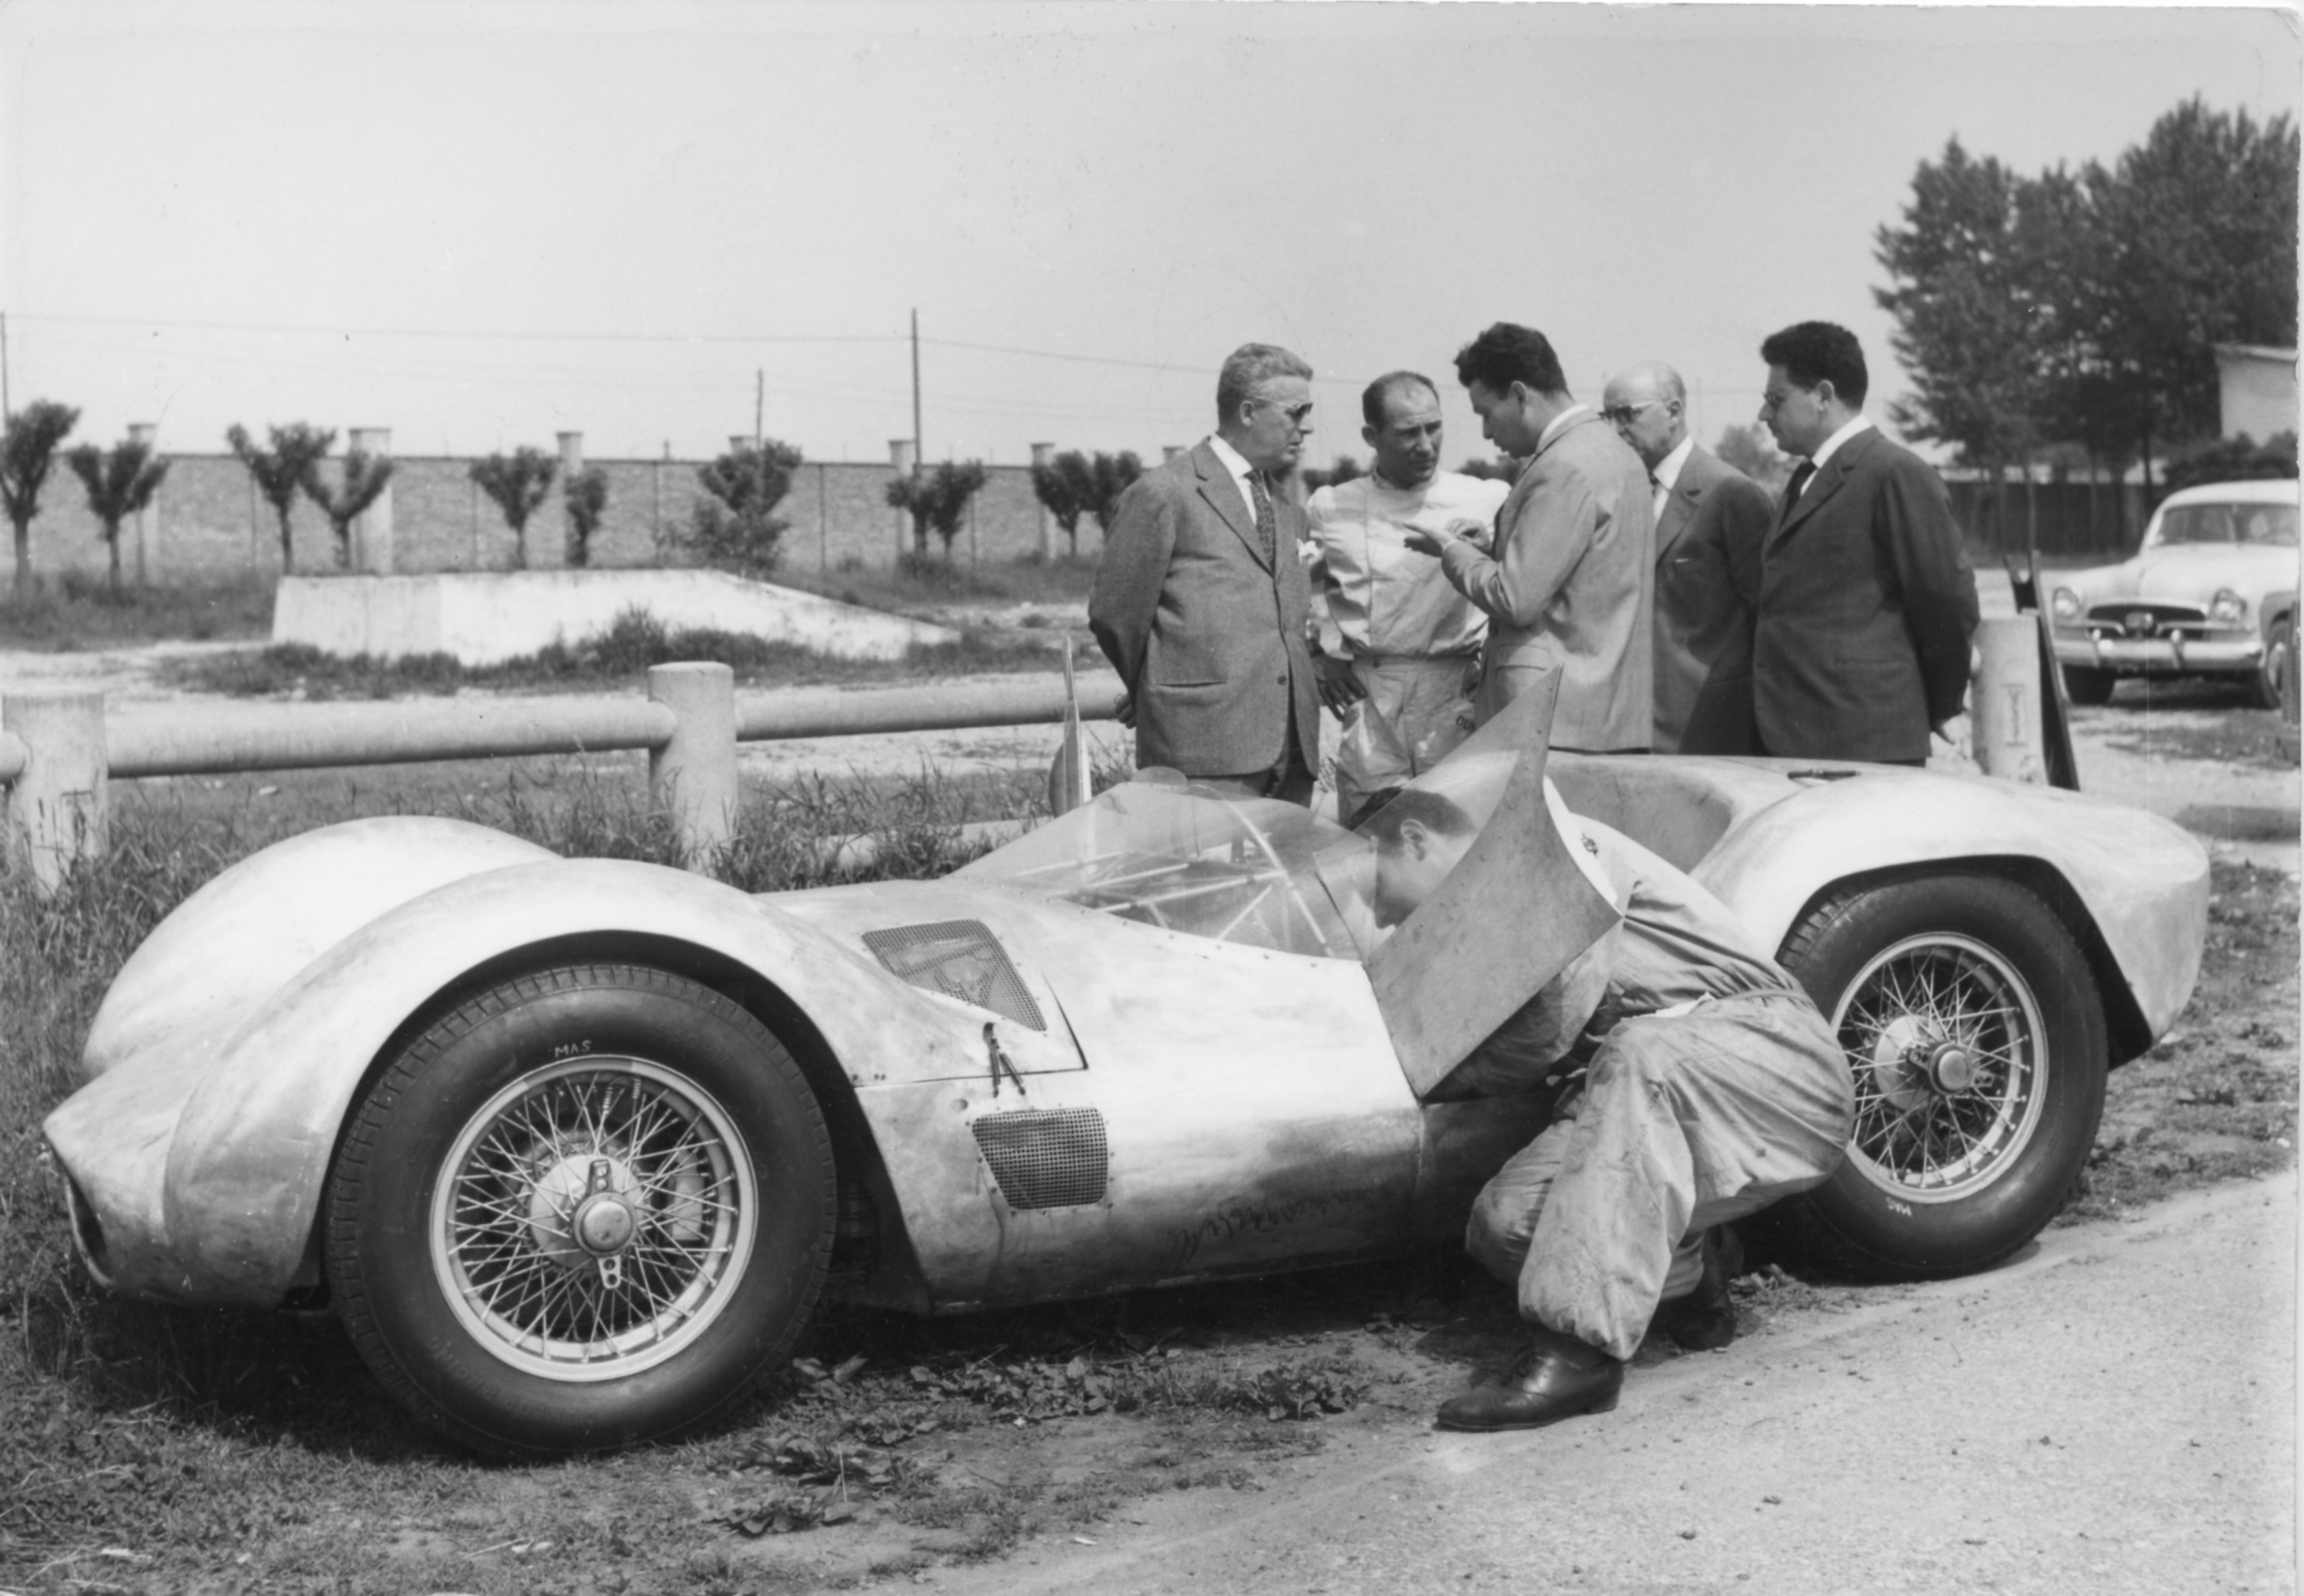 Moss testing the Type 60 at Modena